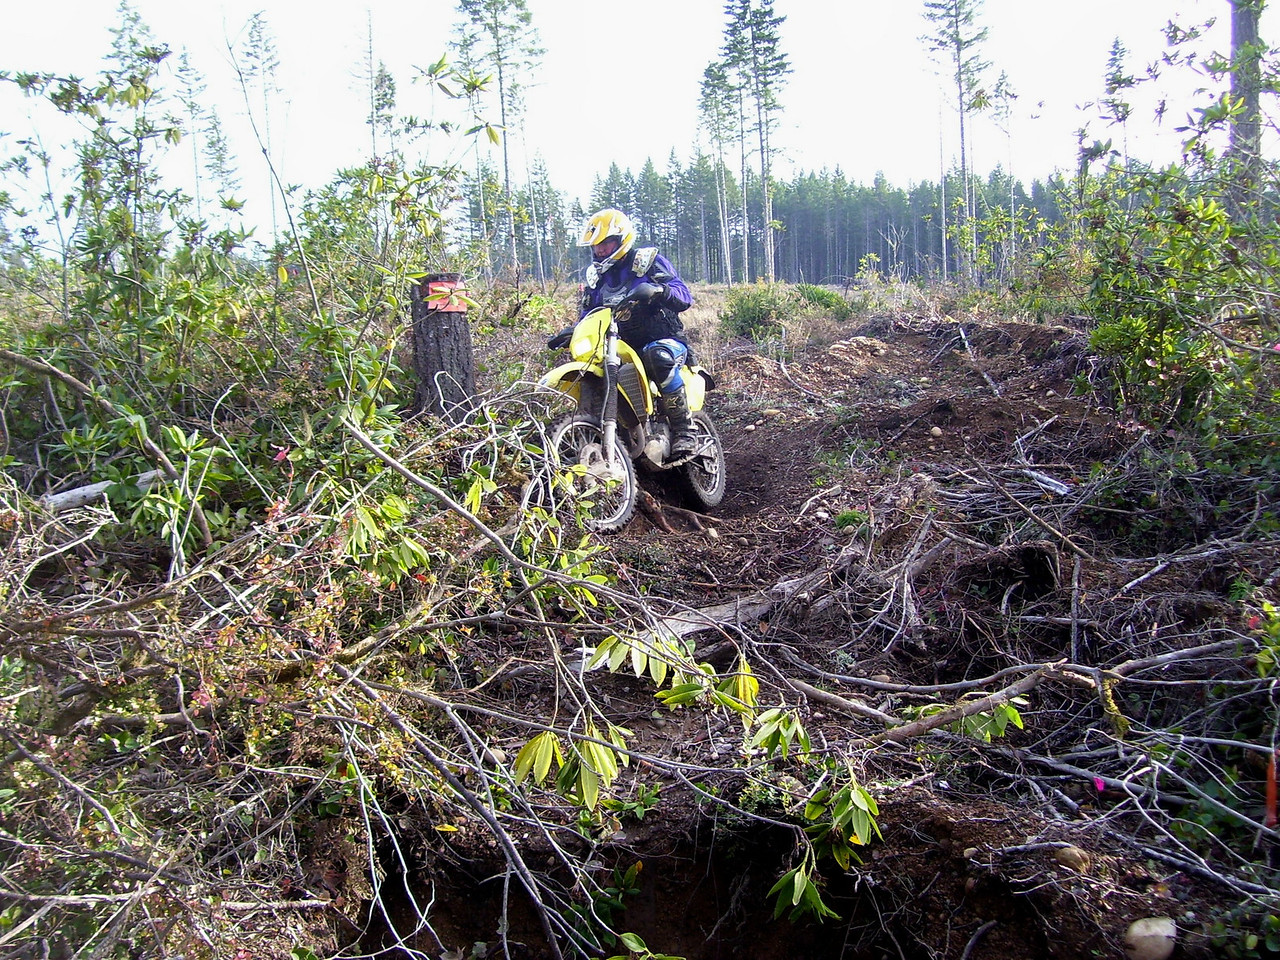 Dan P. How do they build 3 miles of trail in a 80 acre clear cut? We'll show you, just come and ride with us.